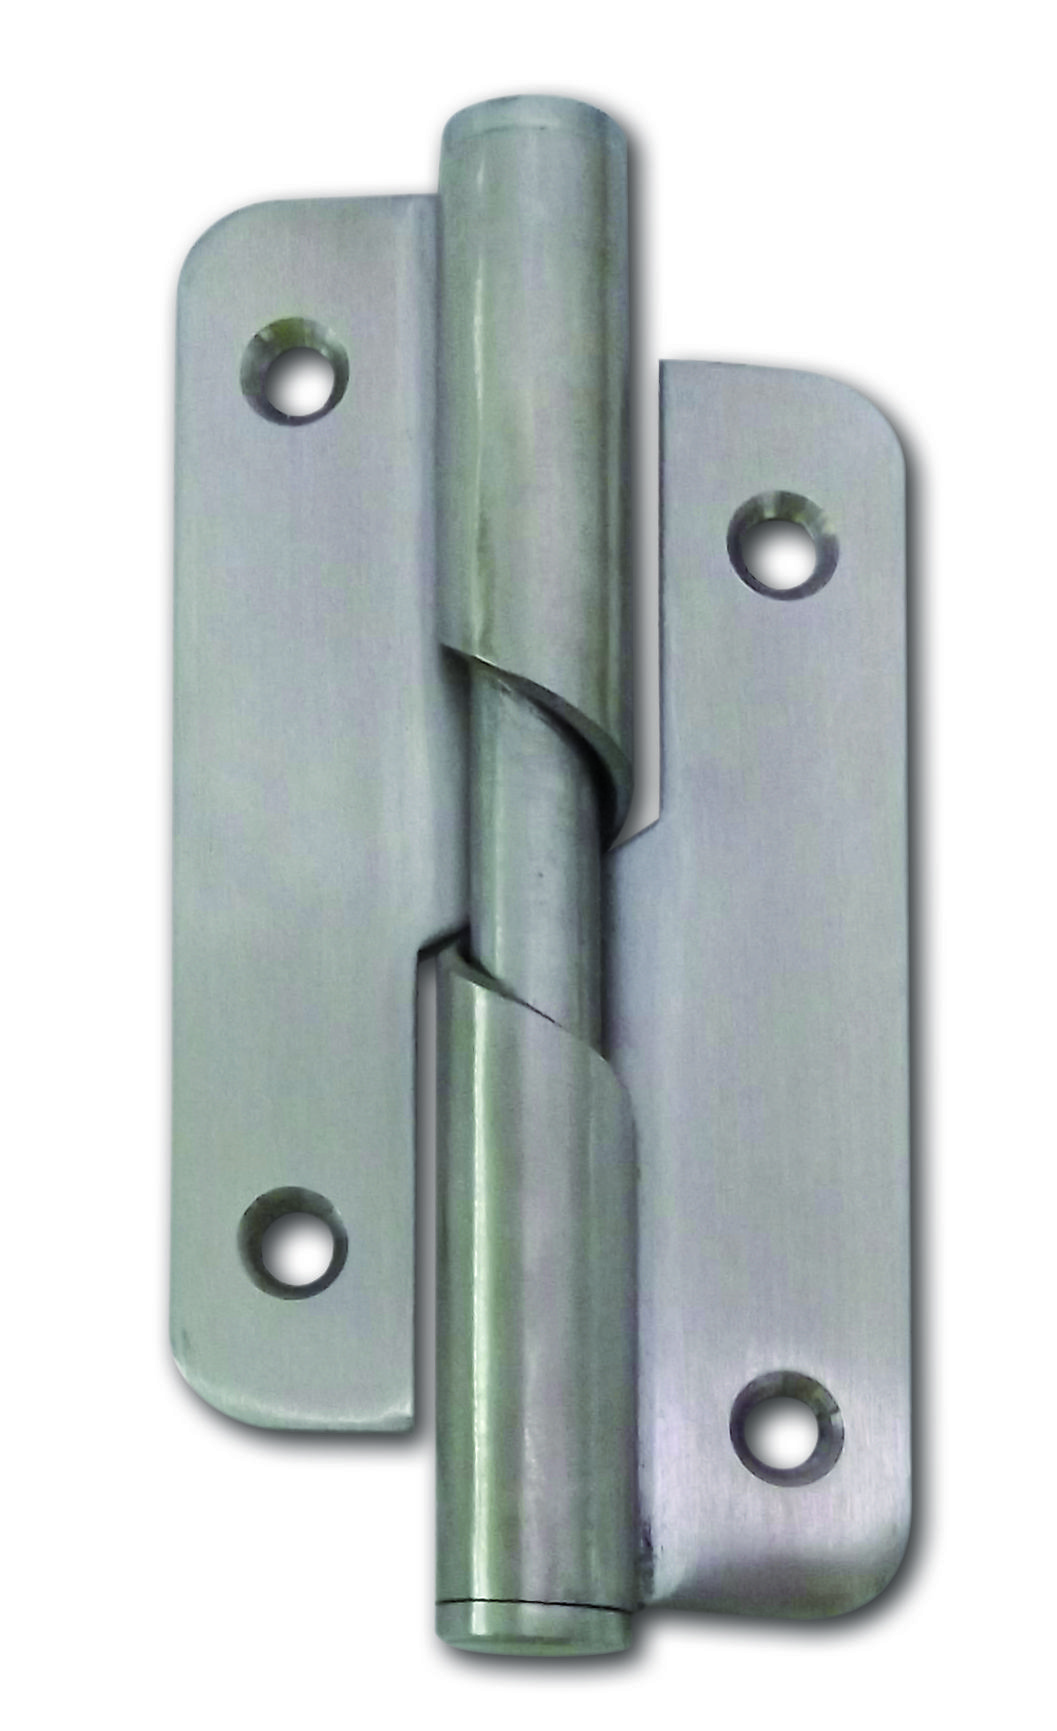 Self-closing hinge, rising hinge, made of stainless steel 304, satin ...